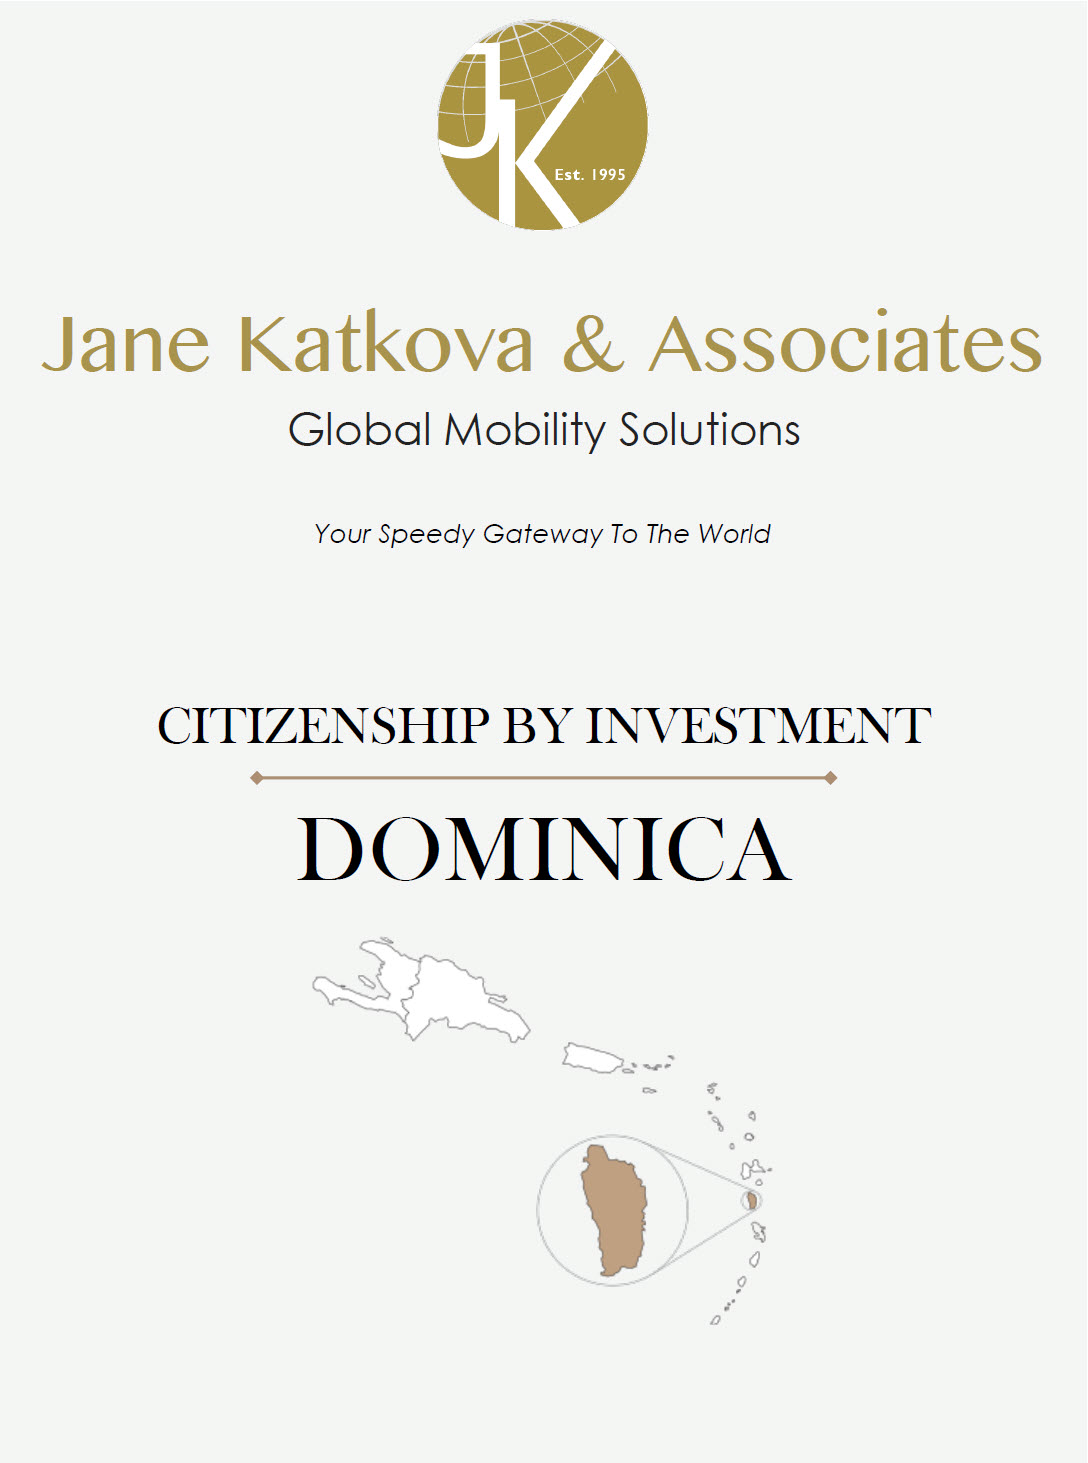 More about Dominica